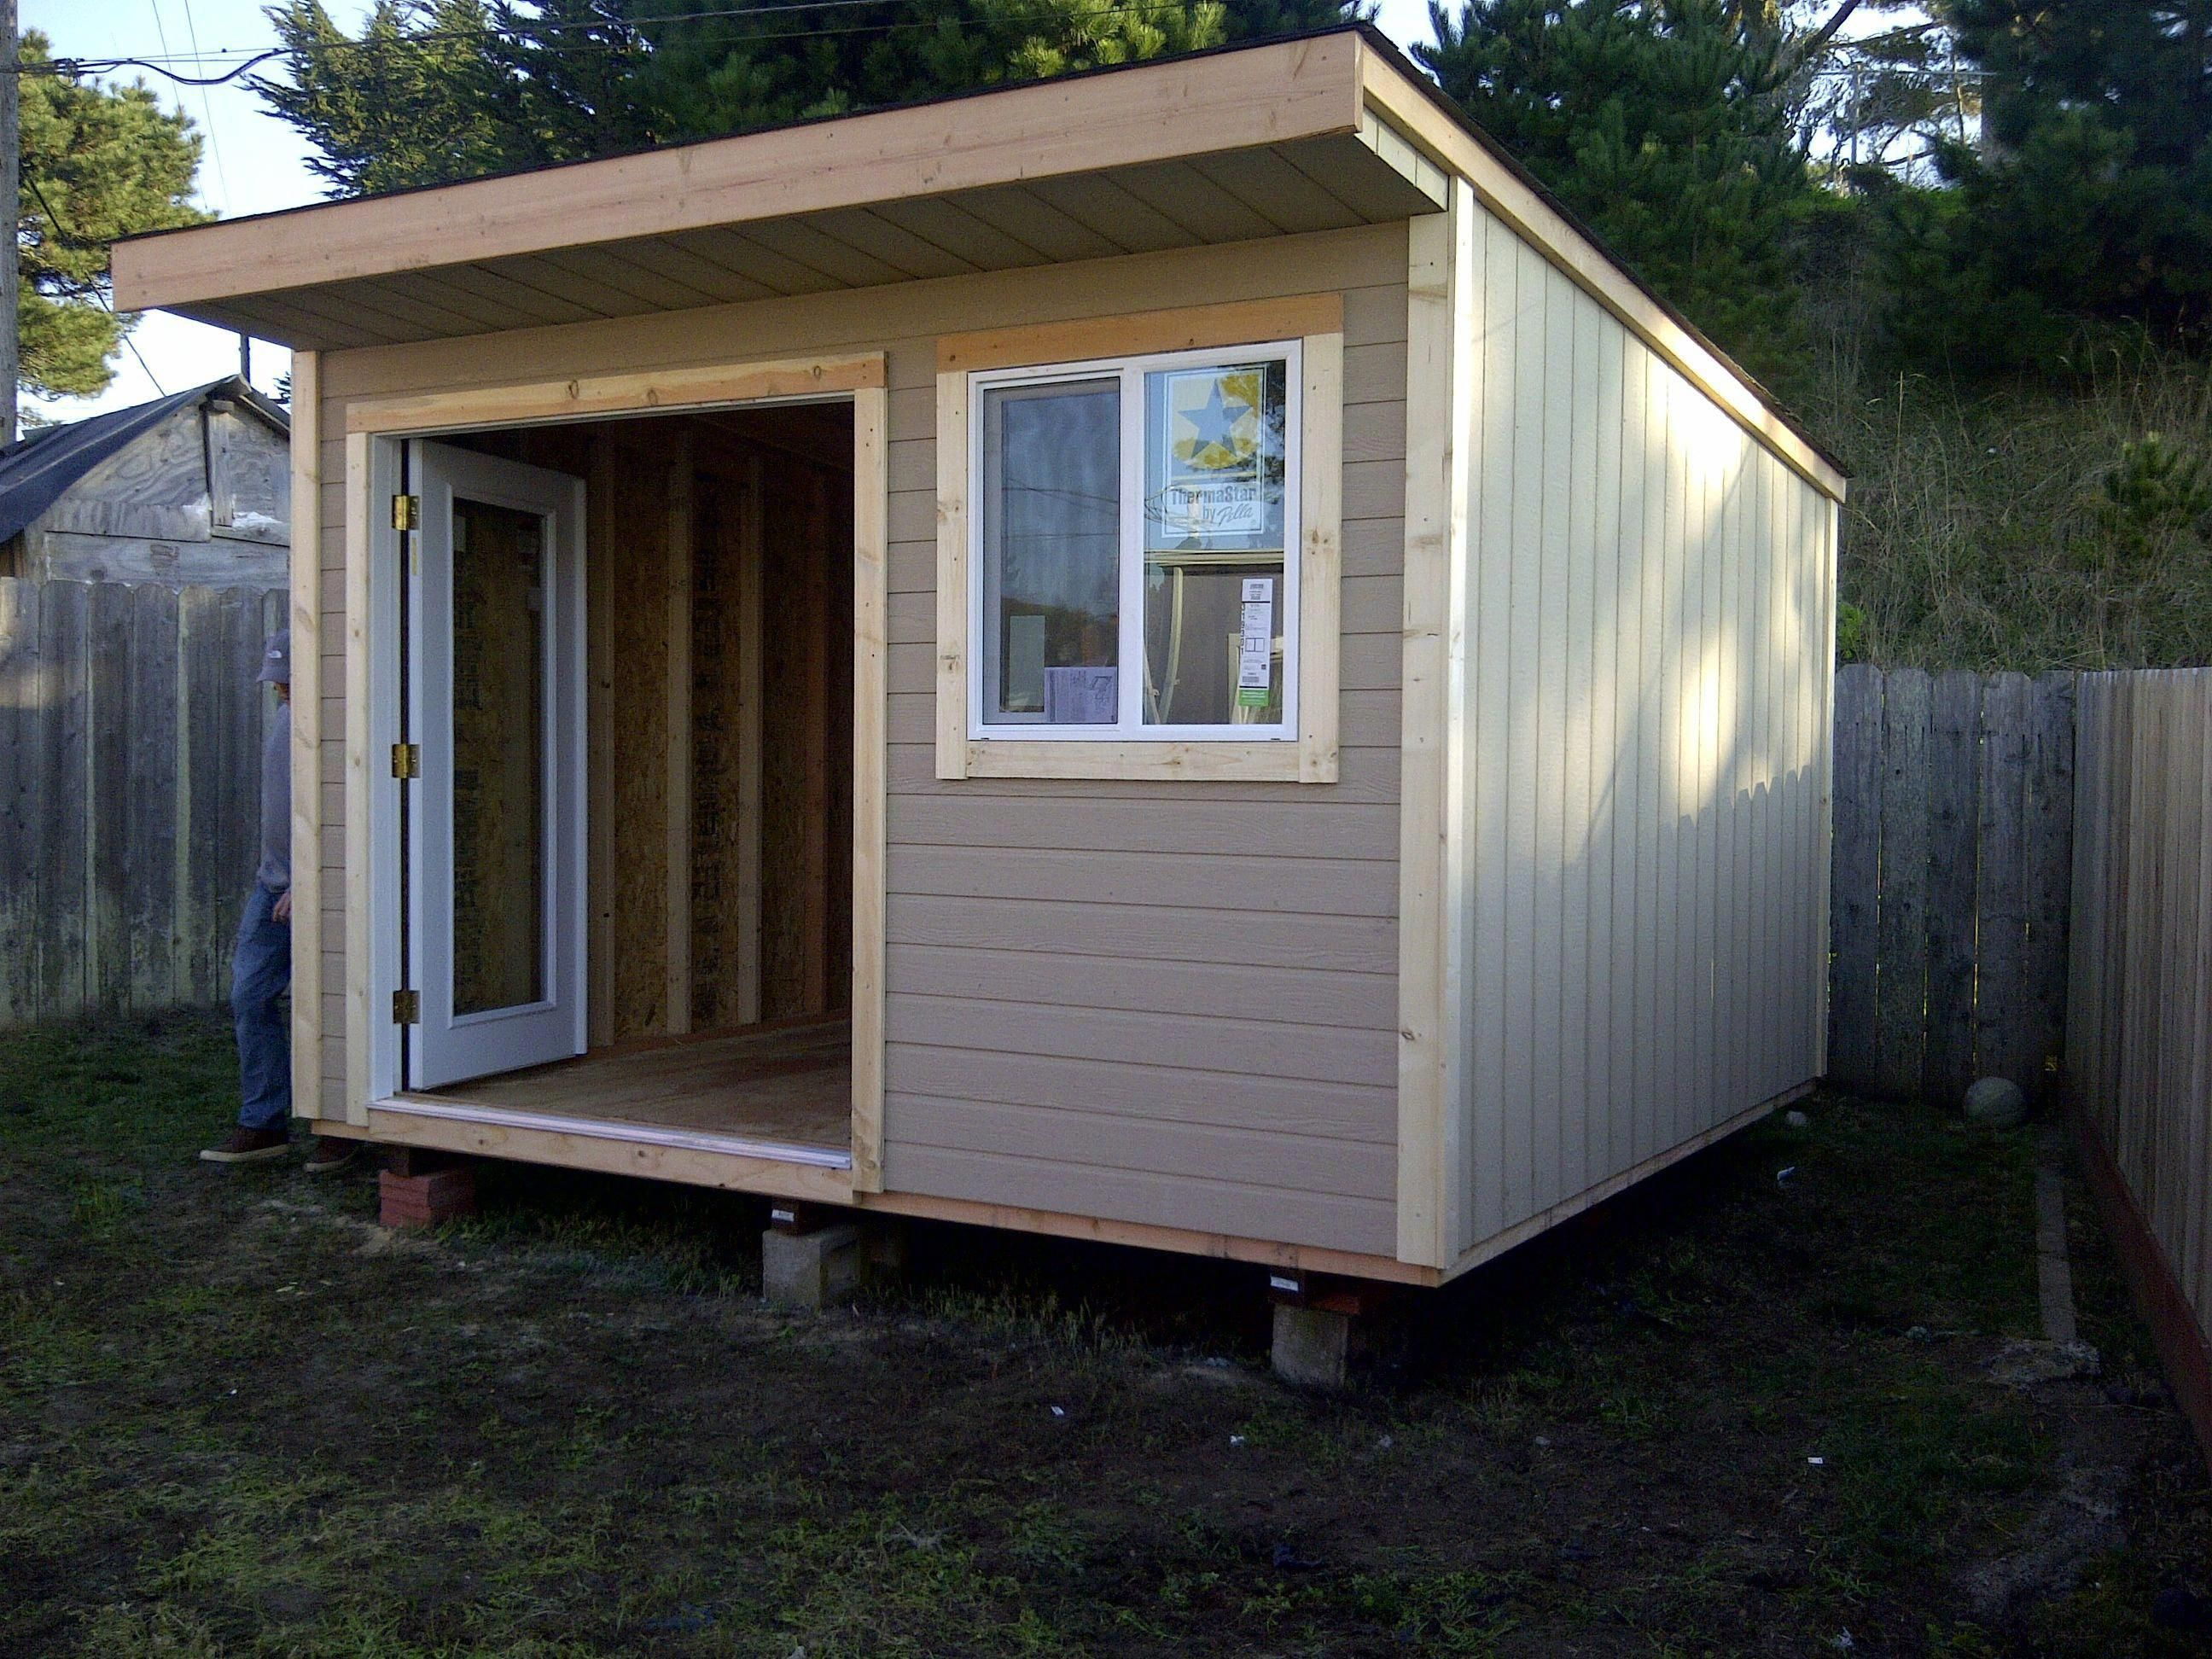 Building a Shed A Beginner's Guide Shed roof design